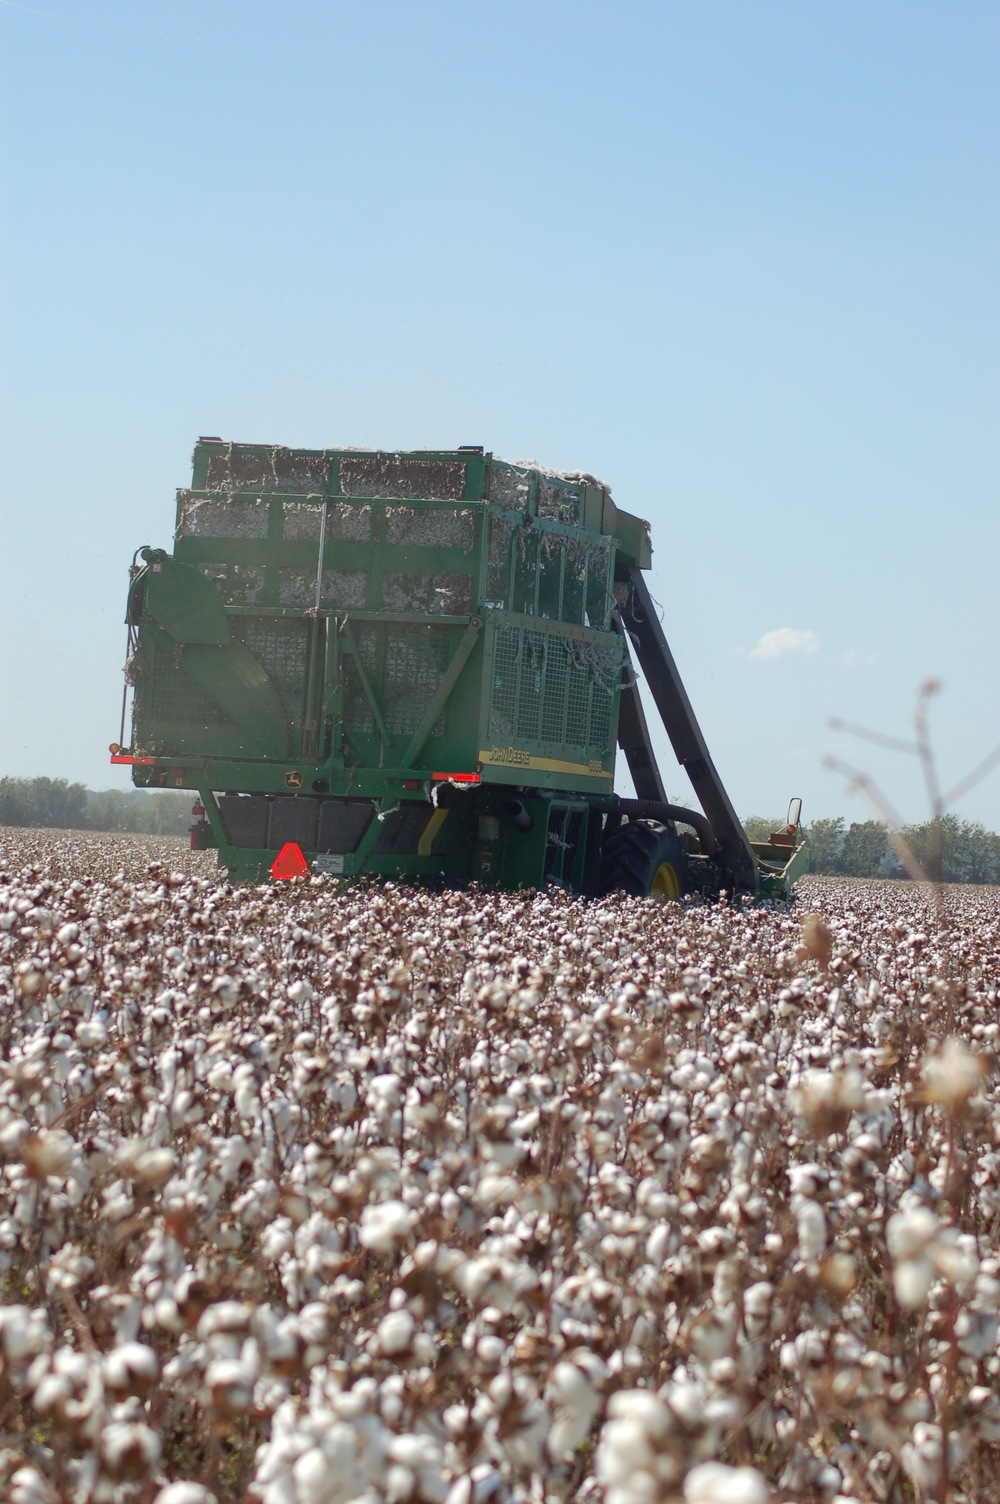 harvesting cotton